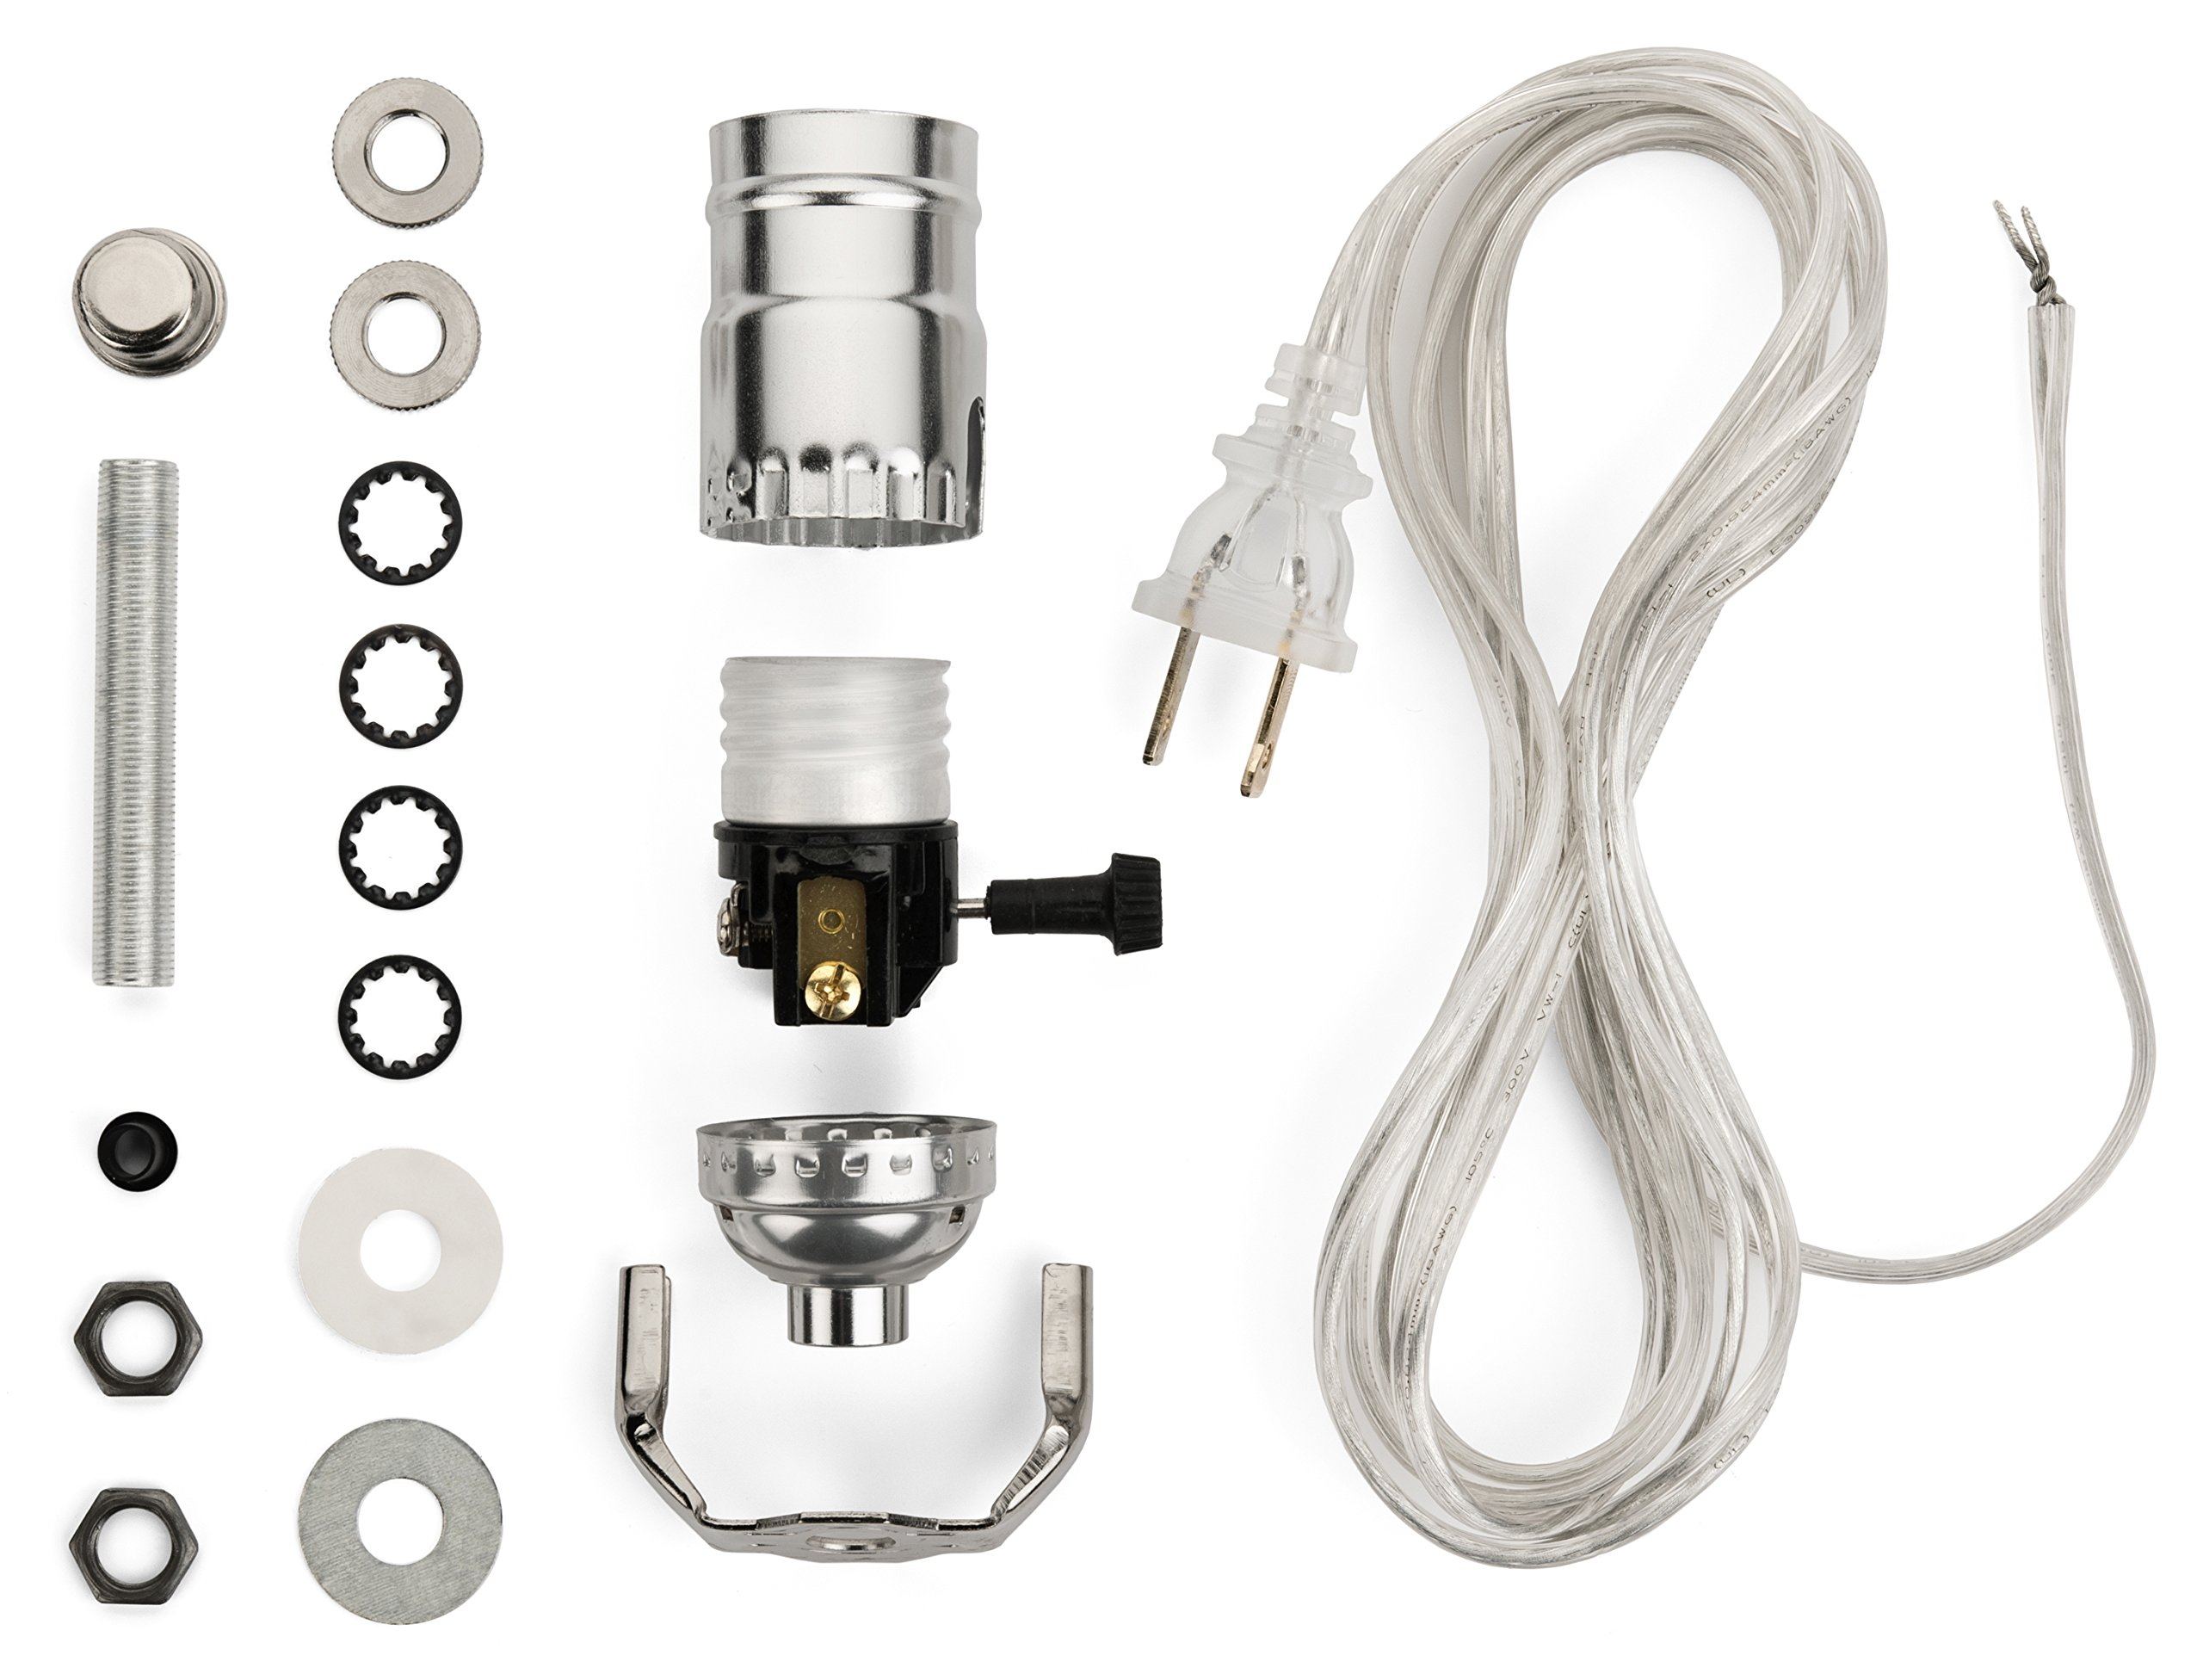 Lamp Wiring Kit - Lamp Making Kits Allow you to Make, Repair and Repurpose Lamps - Rewire a Vintage Lamp or Create a Custom Light with a Light Kit - Nickel Silver Socket - 8 Foot Long Silver Cord